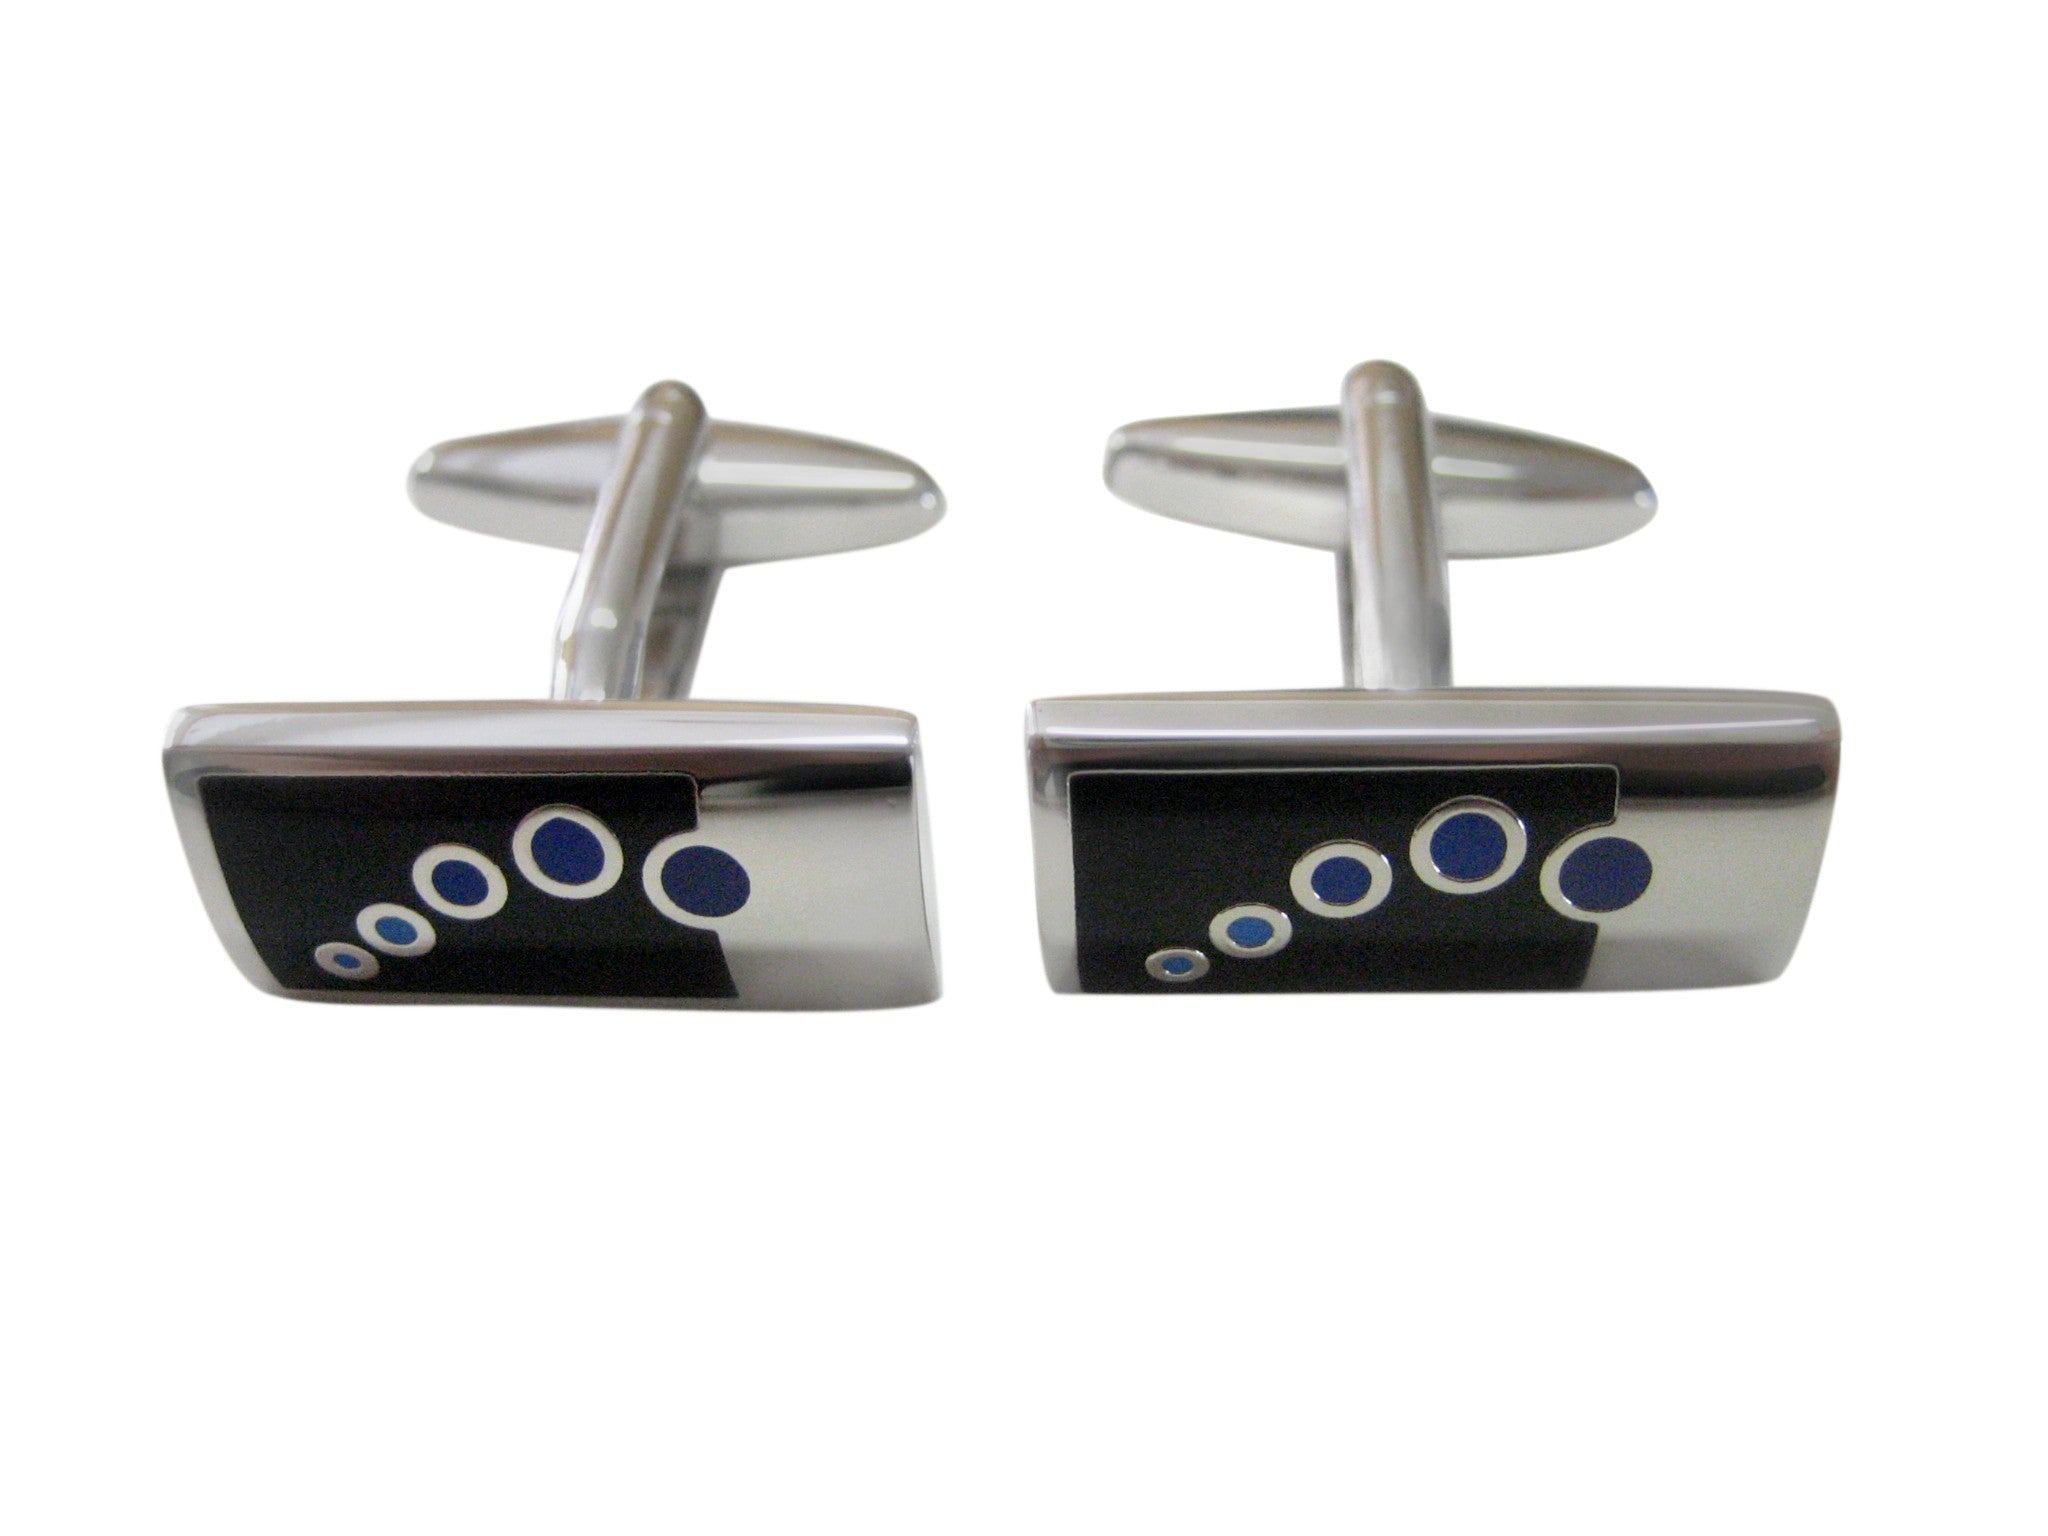 Black and Silver Design Cufflinks with Blue Circles